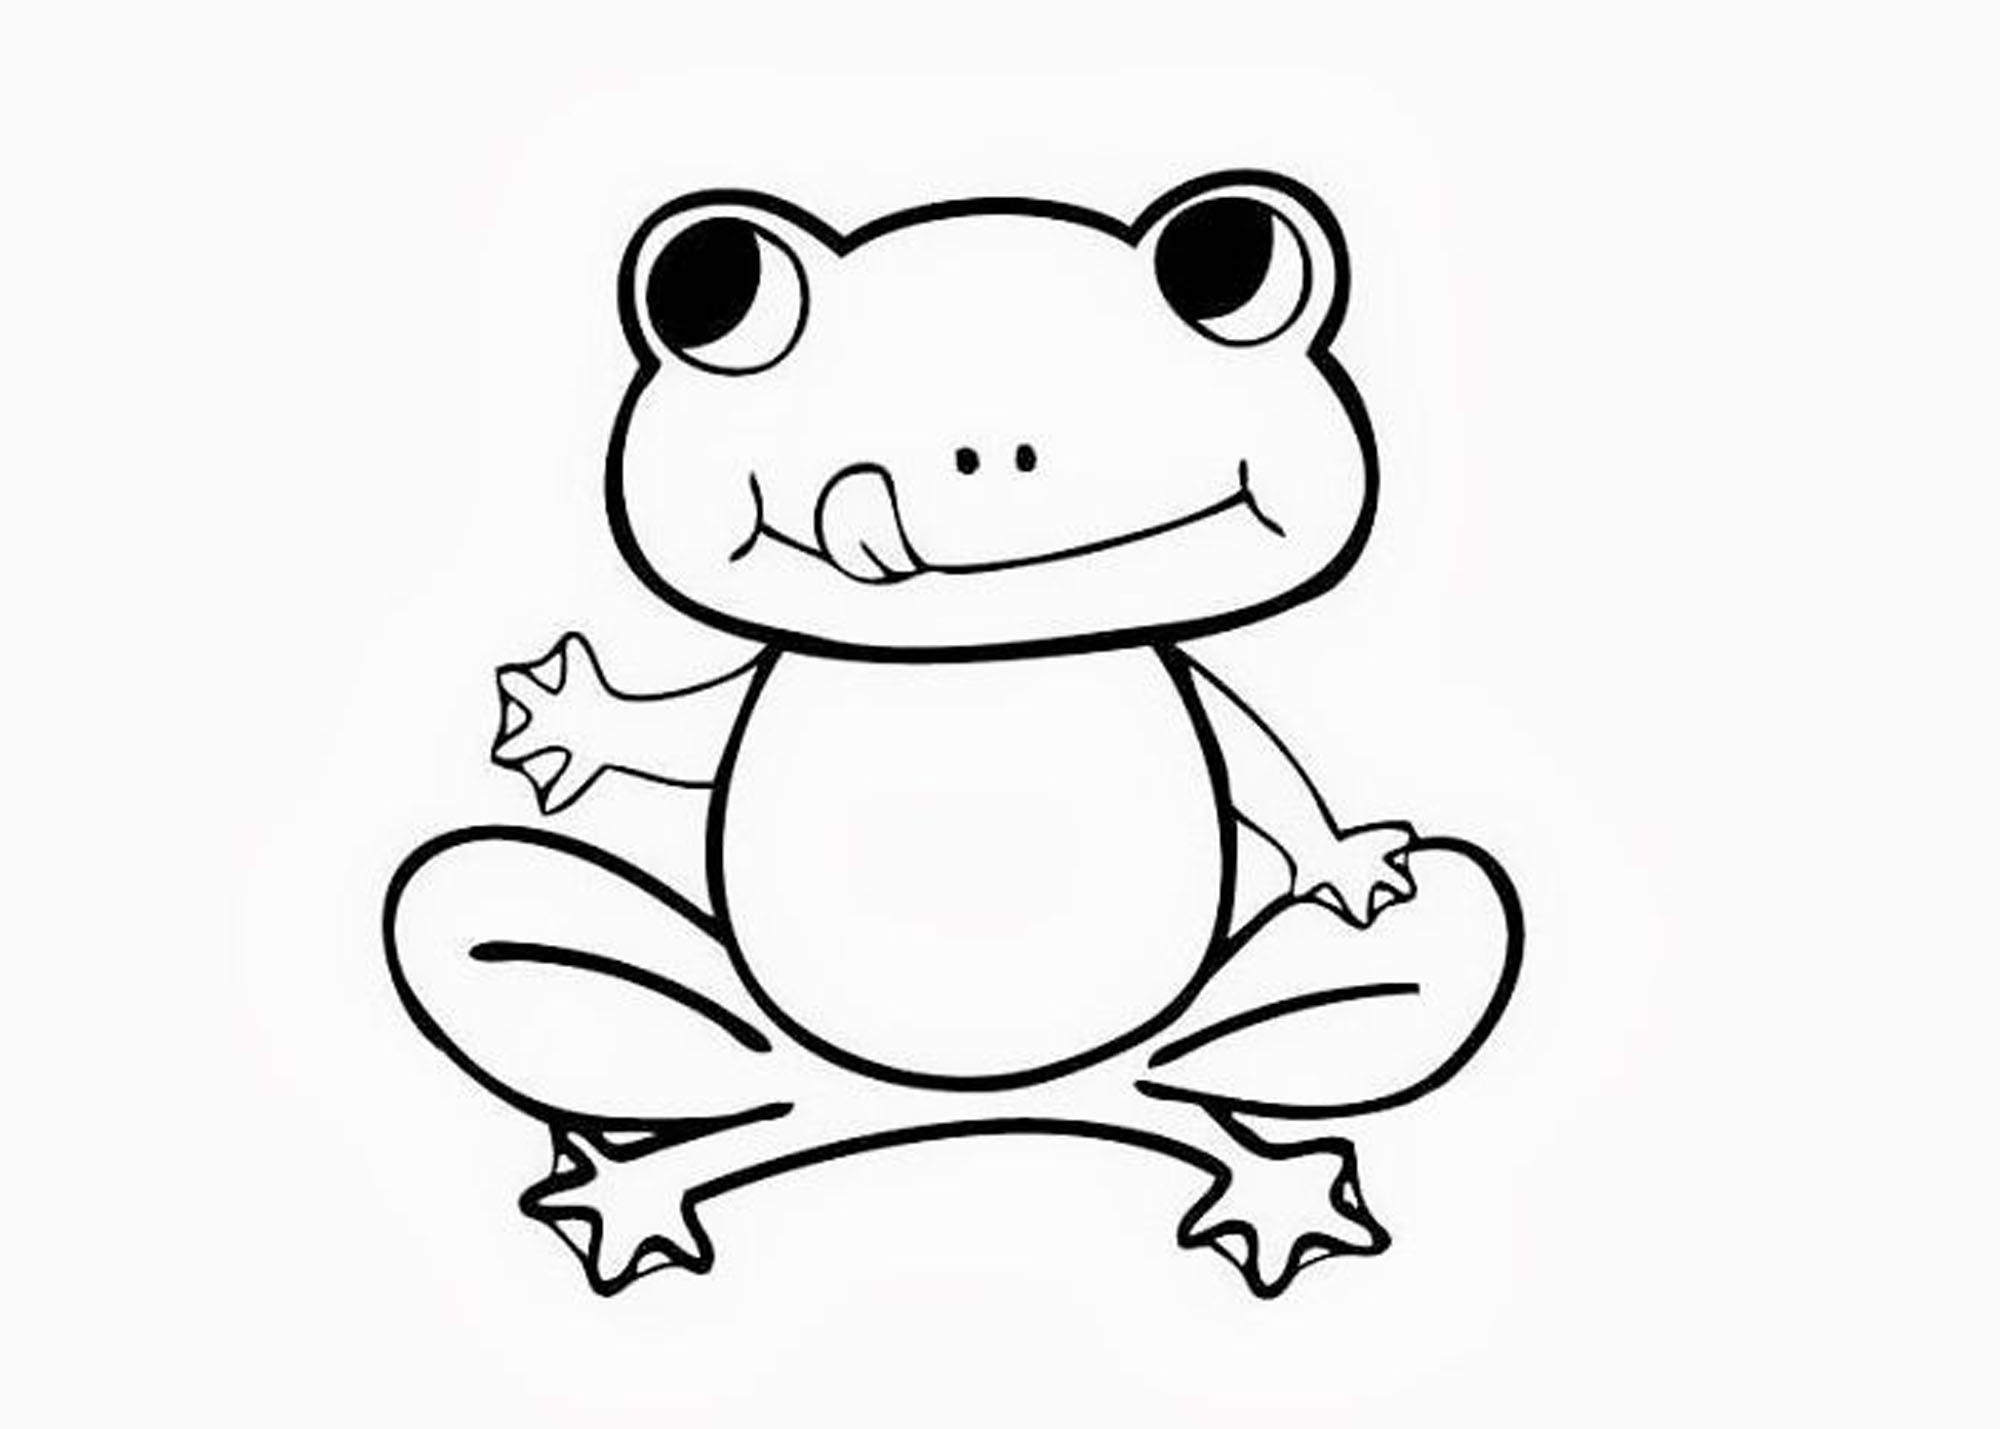 frogs coloring pages frog free printable coloring sheets coloringpages4kidzcom frogs pages coloring